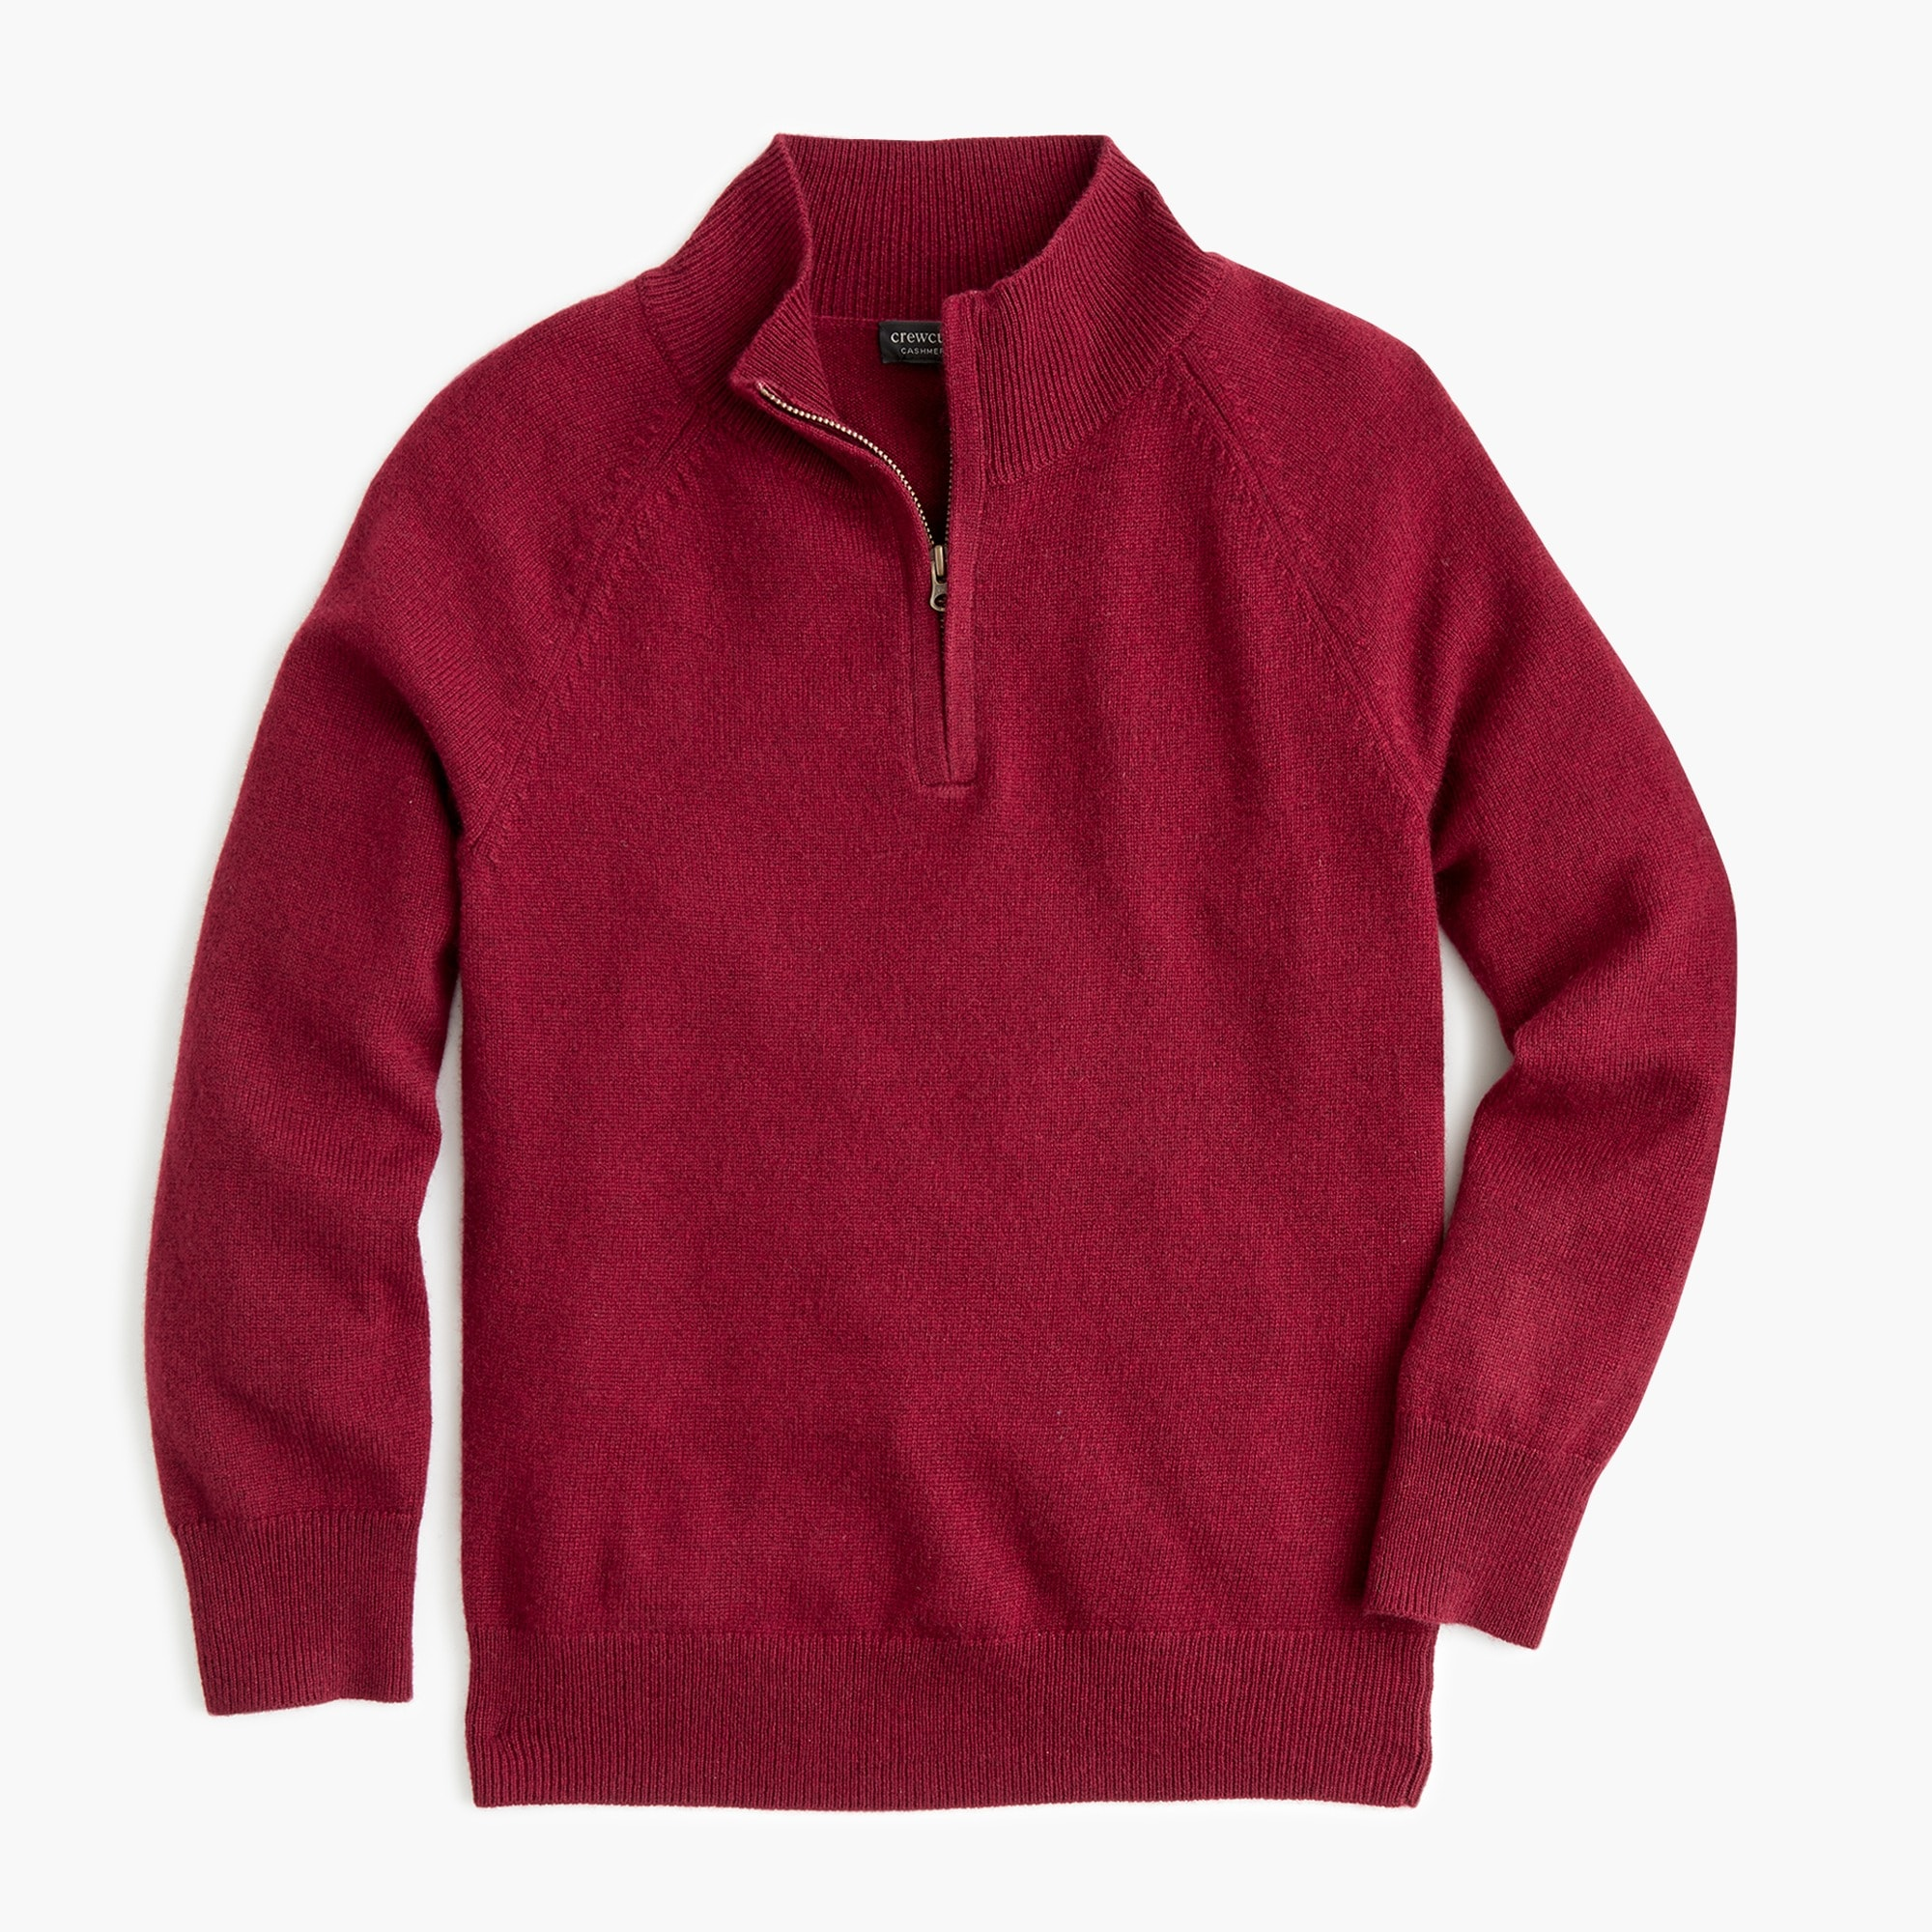 boys Boys' cashmere half-zip sweater